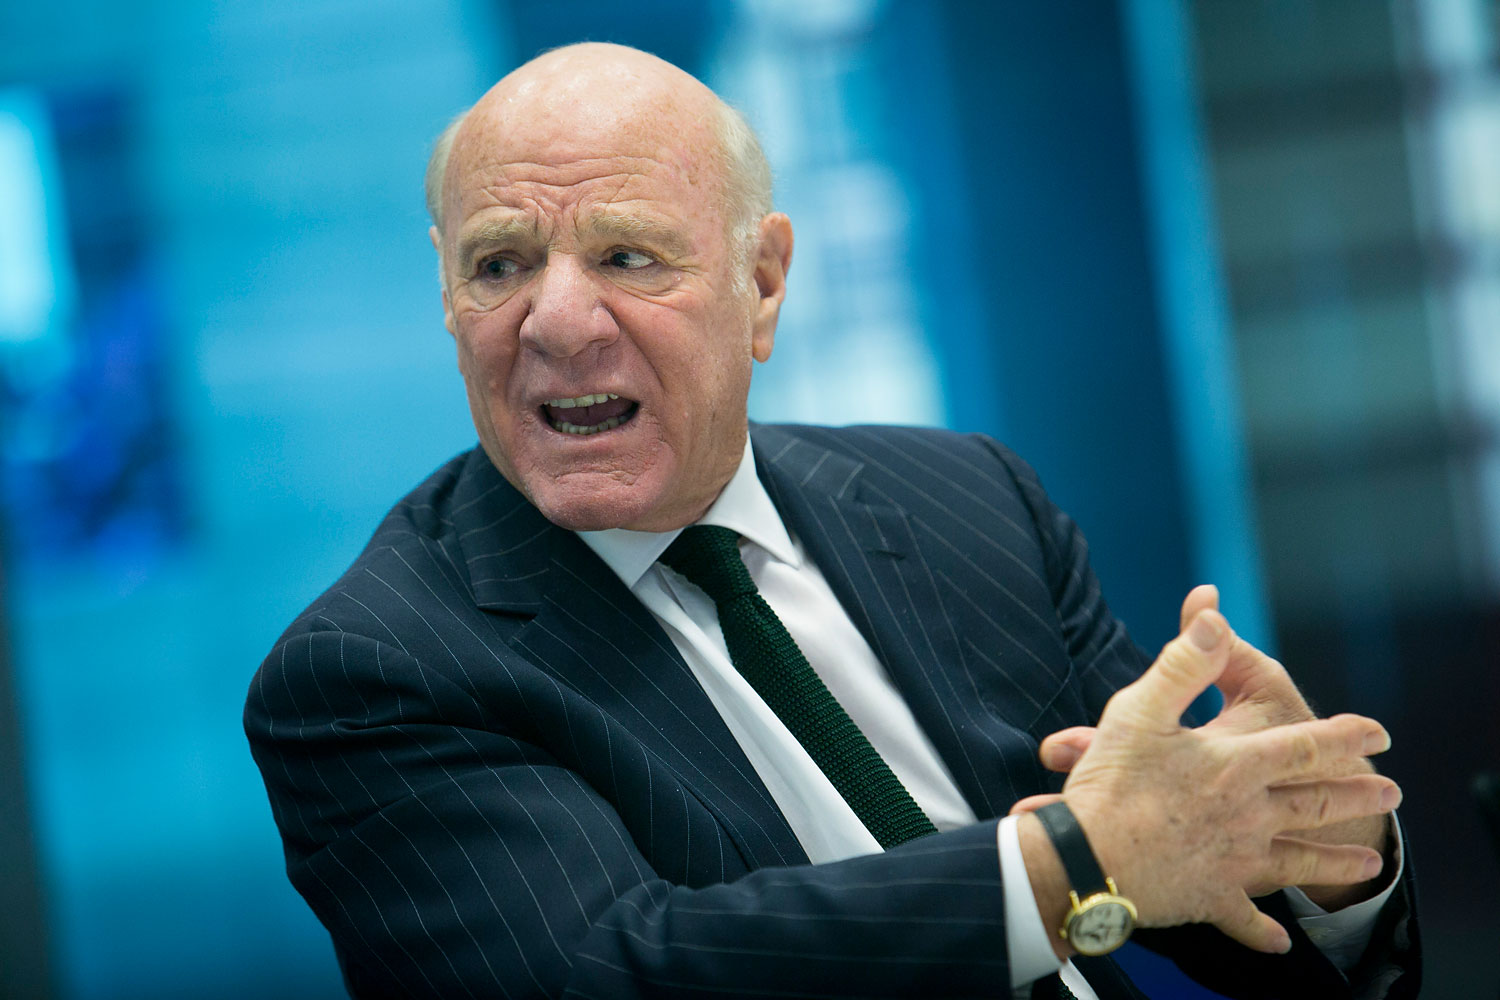 Barry Diller, chairman and chief executive officer of IAC/InterActiveCorp., speaks during an interview in New York, April 1, 2014.